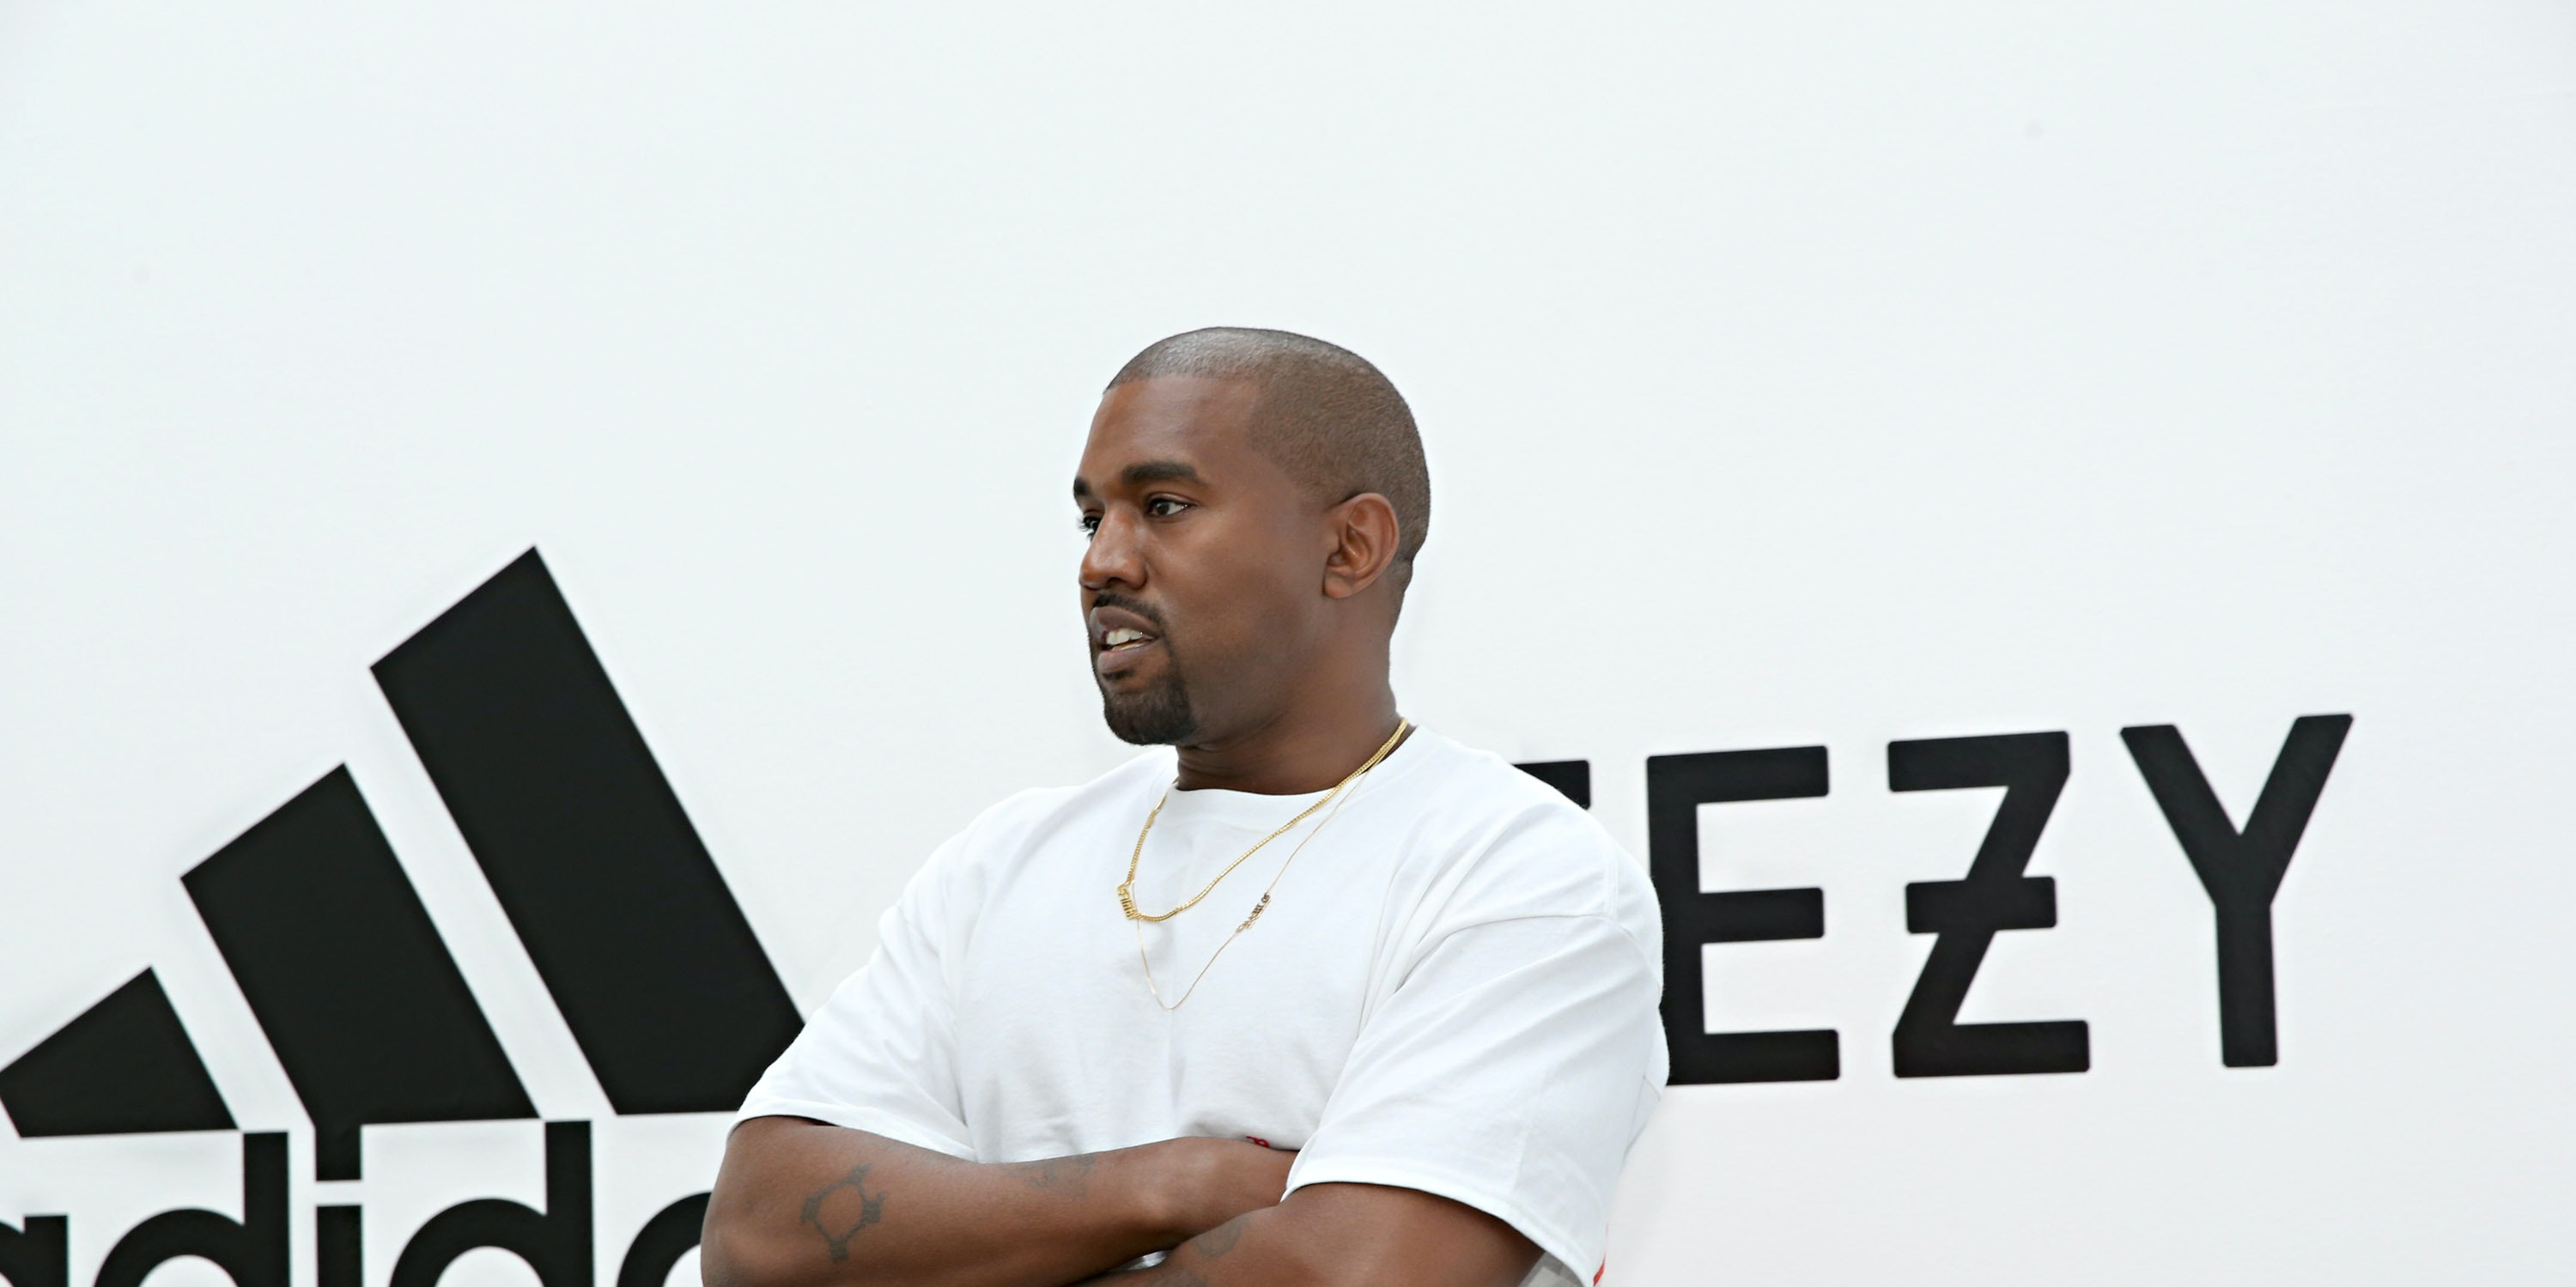 adidas + KANYE WEST partnership announcement